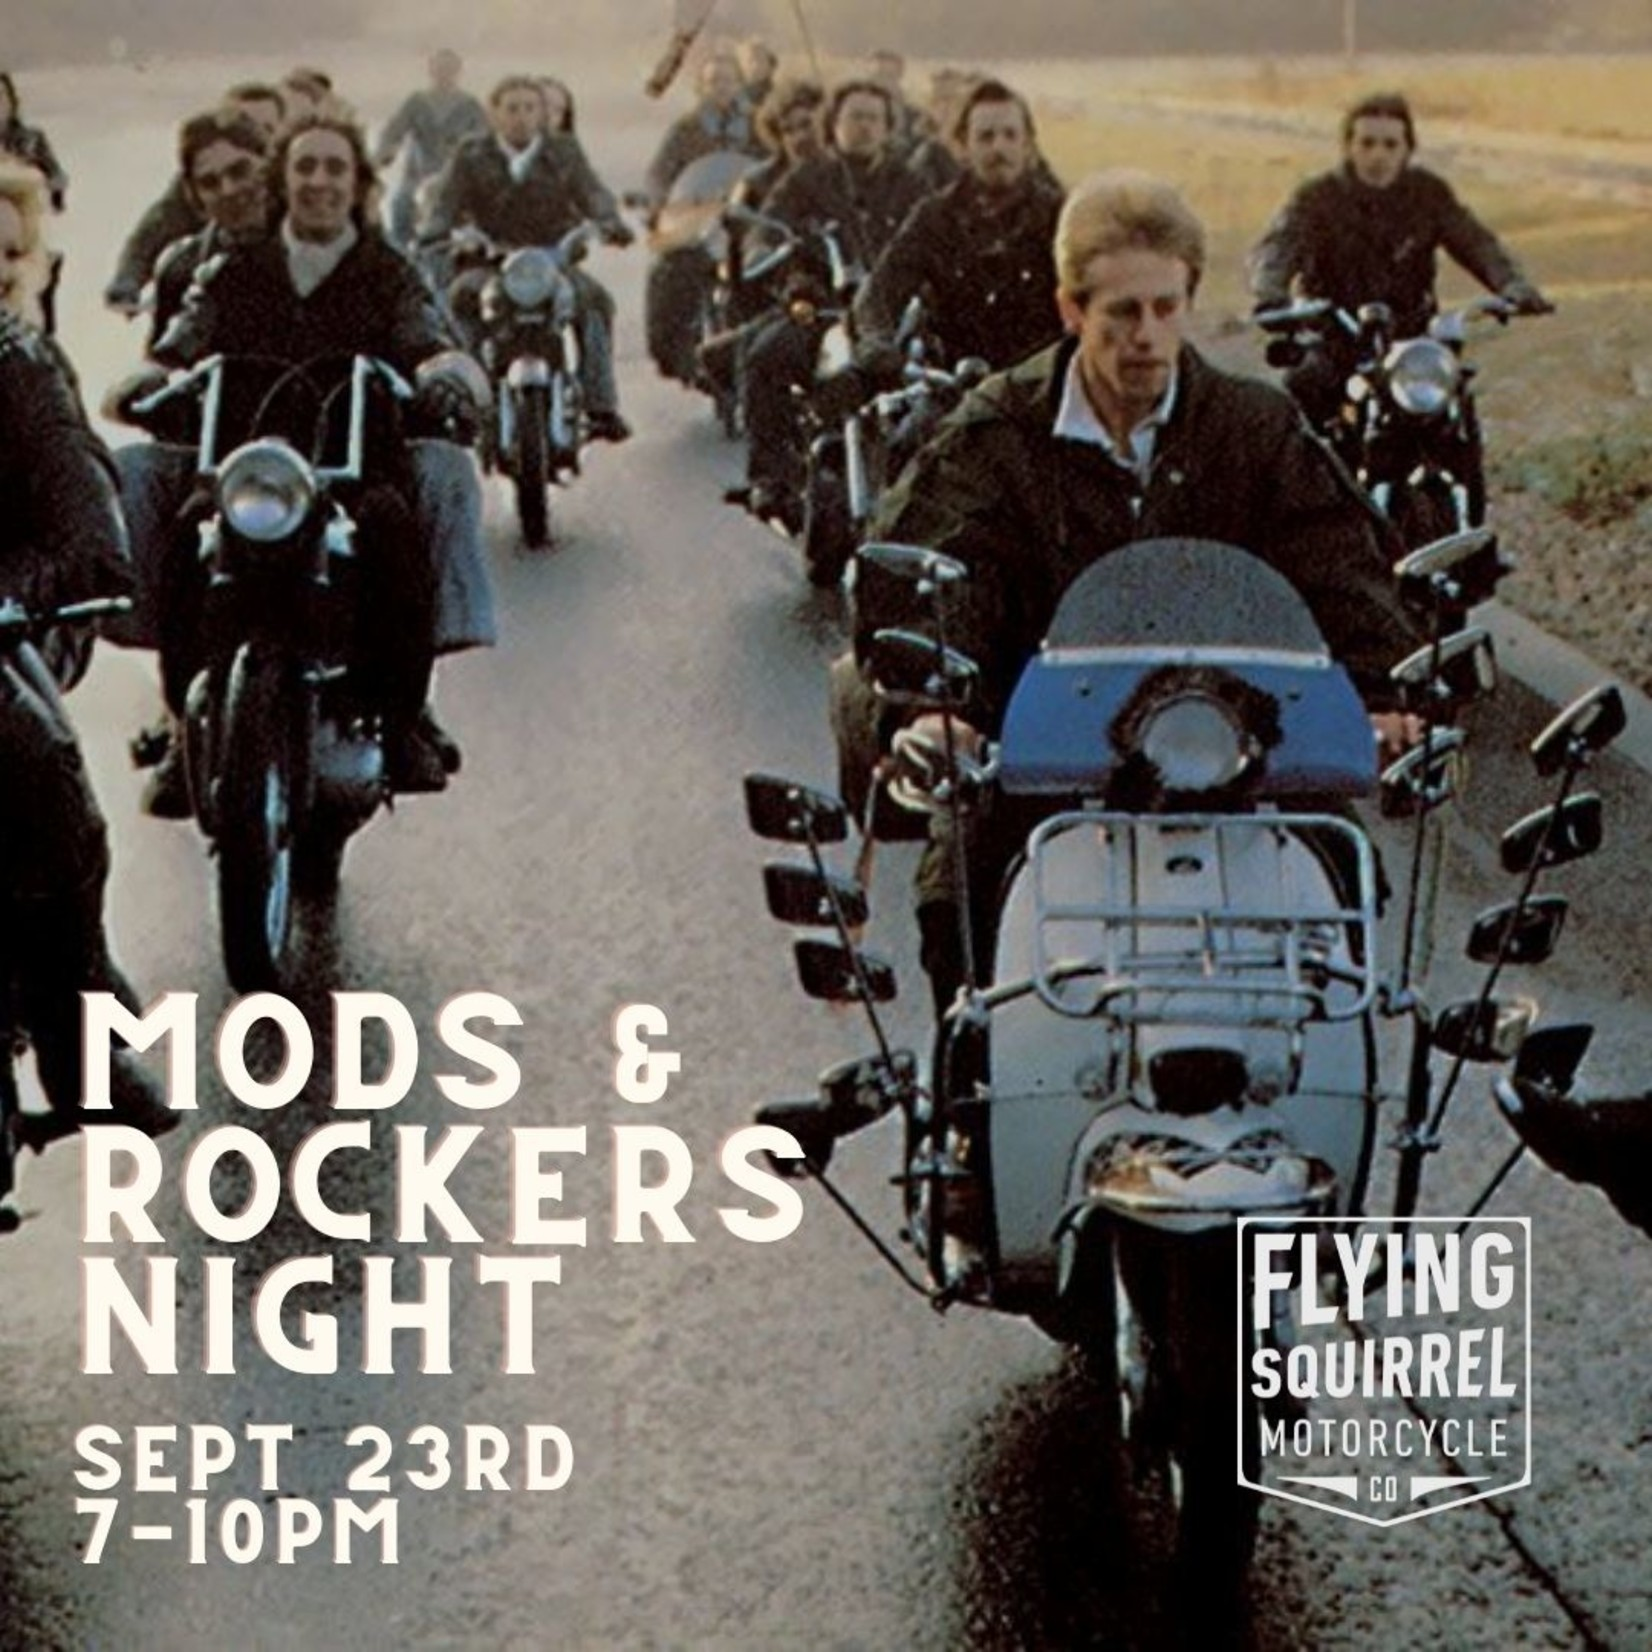 Mods and Rockers' Night Event